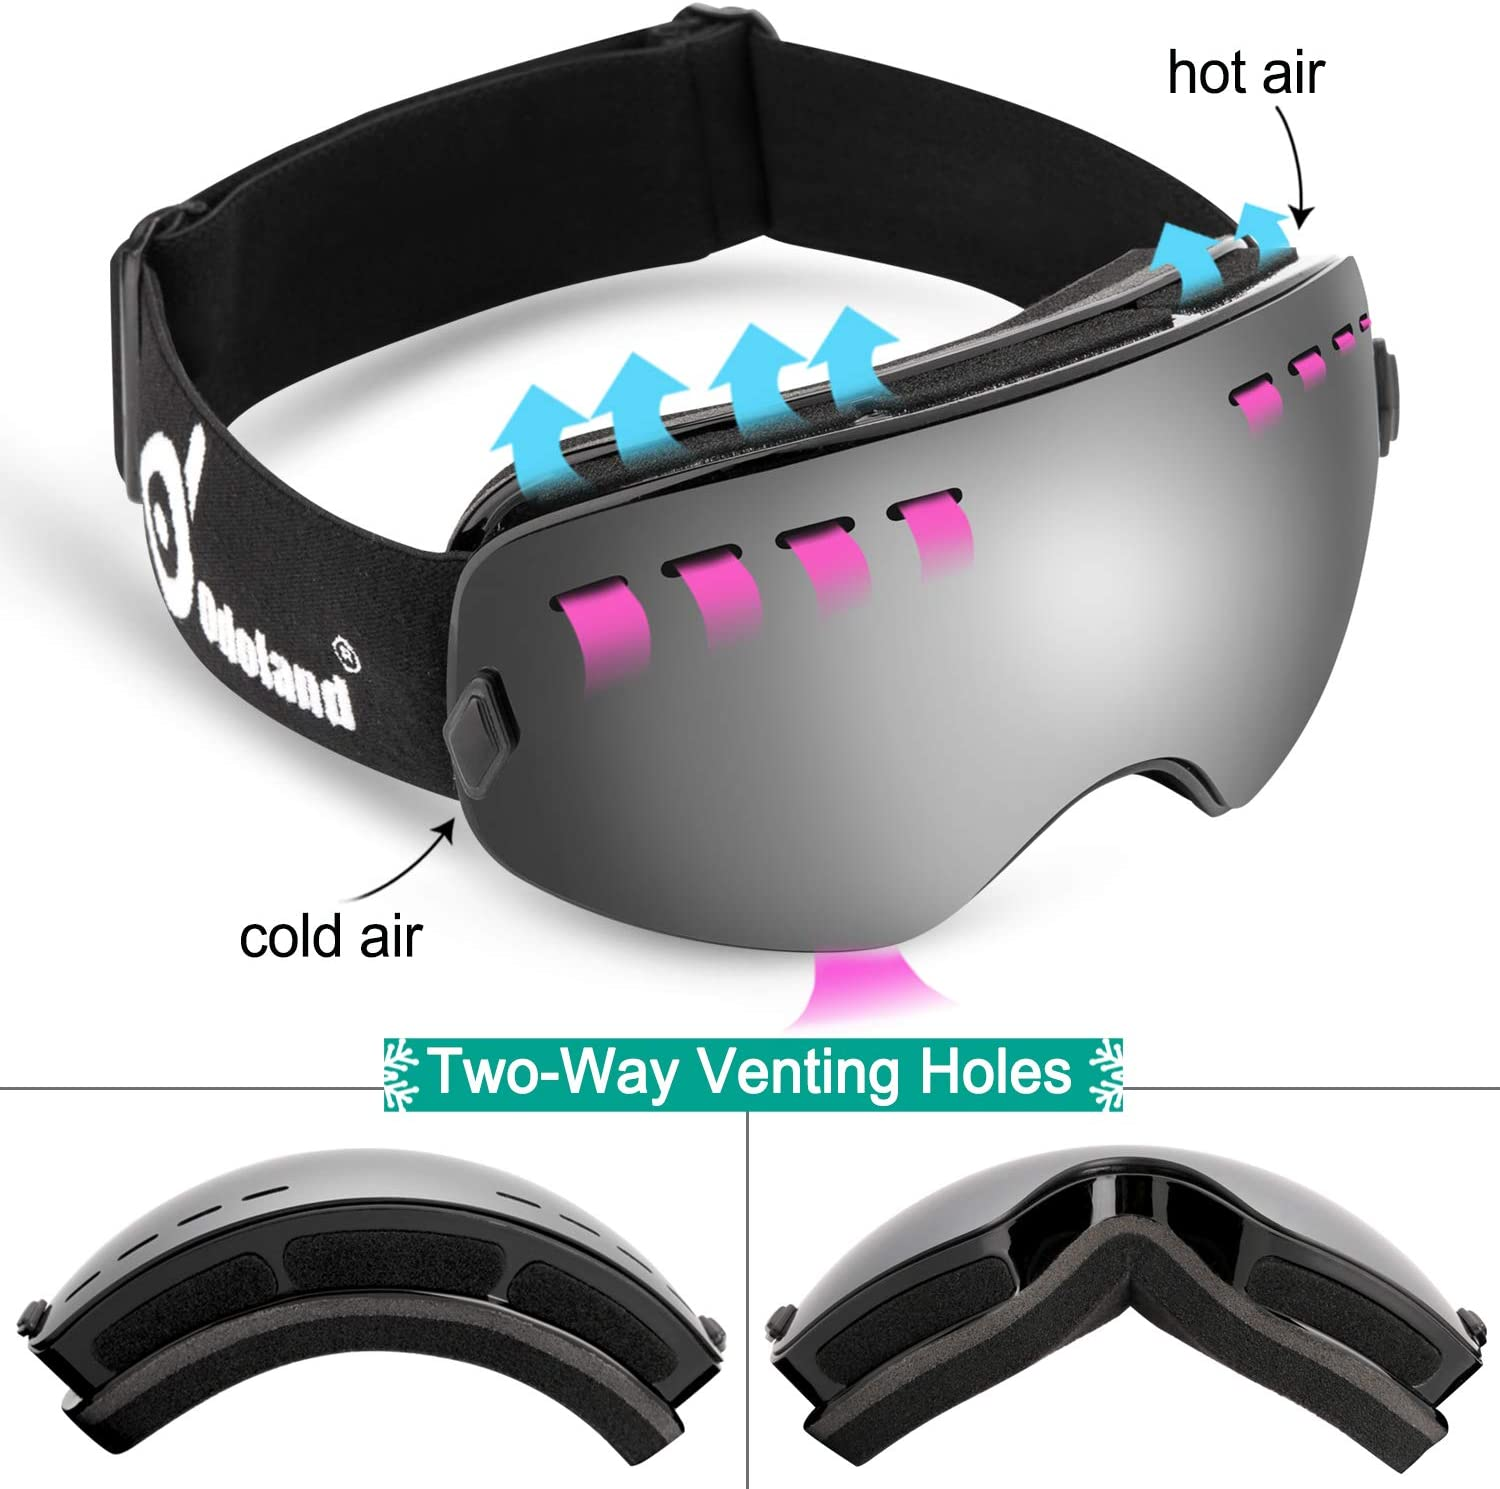 Odoland Snow Ski Goggles for Kids Youth, Anti-Fog and UV 400 Protection Snow Goggles Compatible for Ski Helmet, Winter Outdoor Sports Protective Glasses Multi-Color